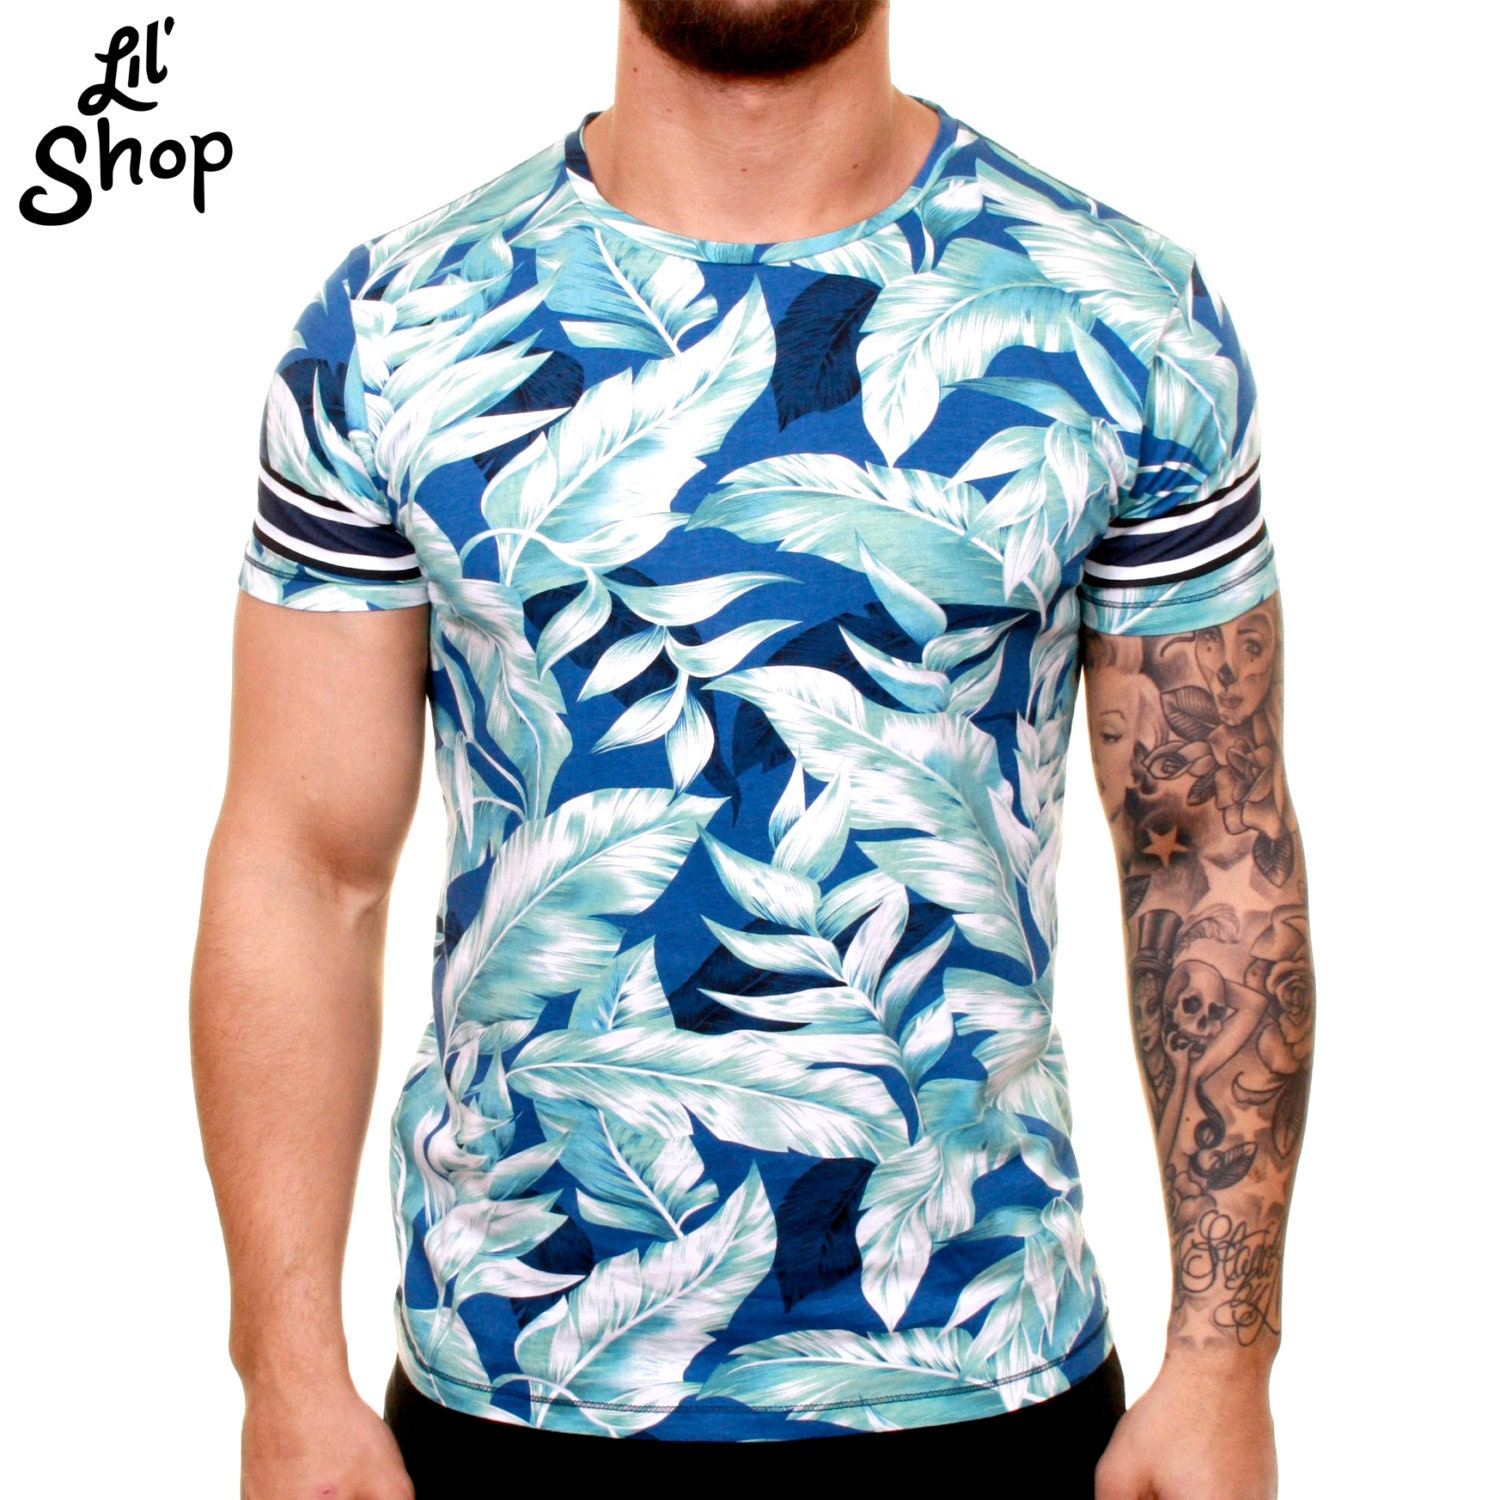 Custom all over print t shirt dye sublimation for All over printing t shirts